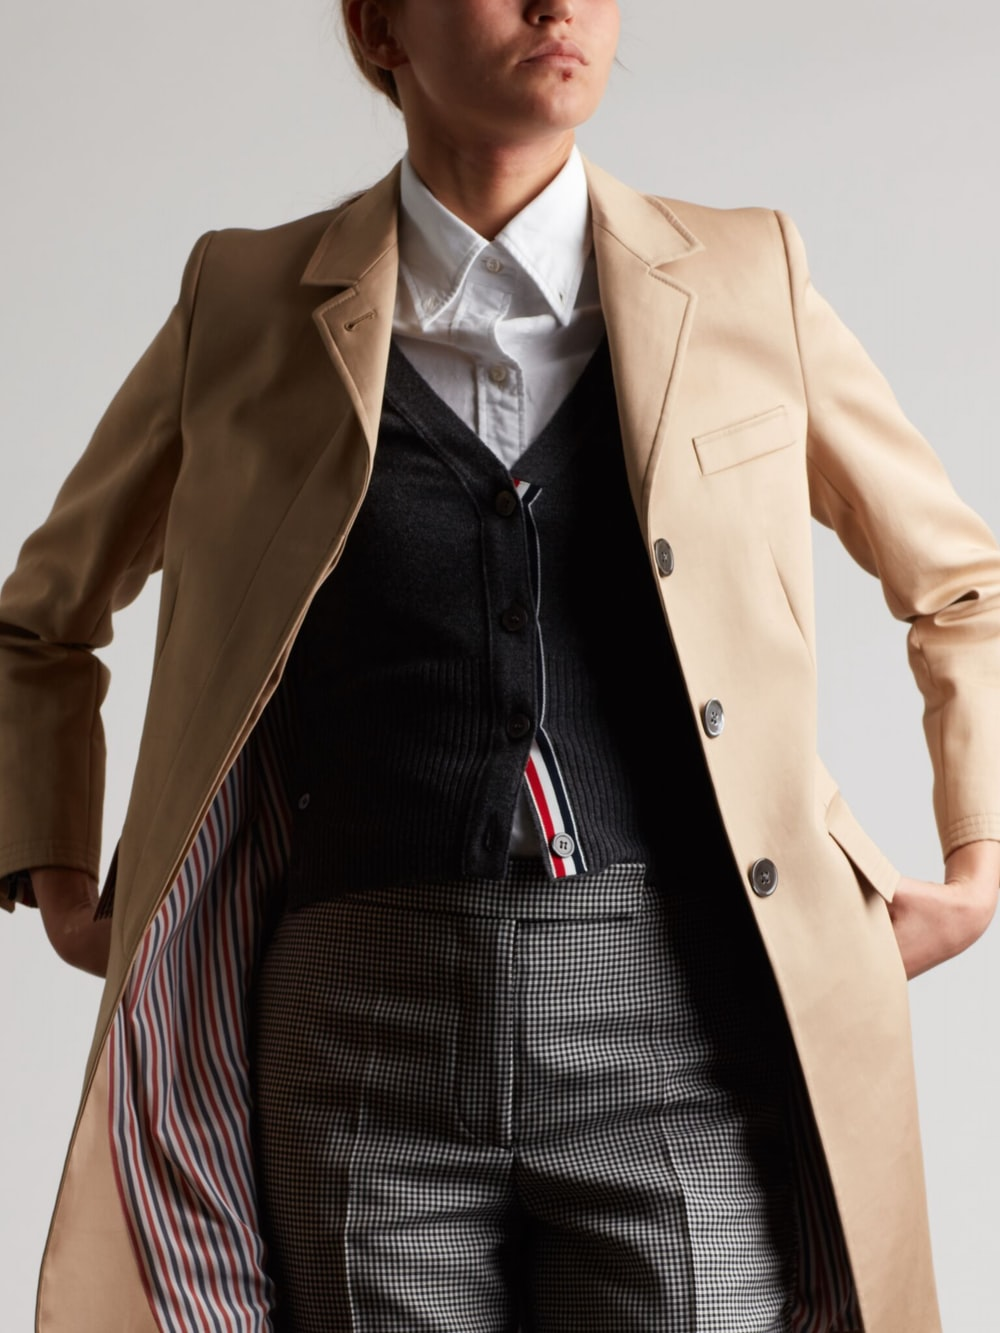 person wearing brown coat while putting hands on packet